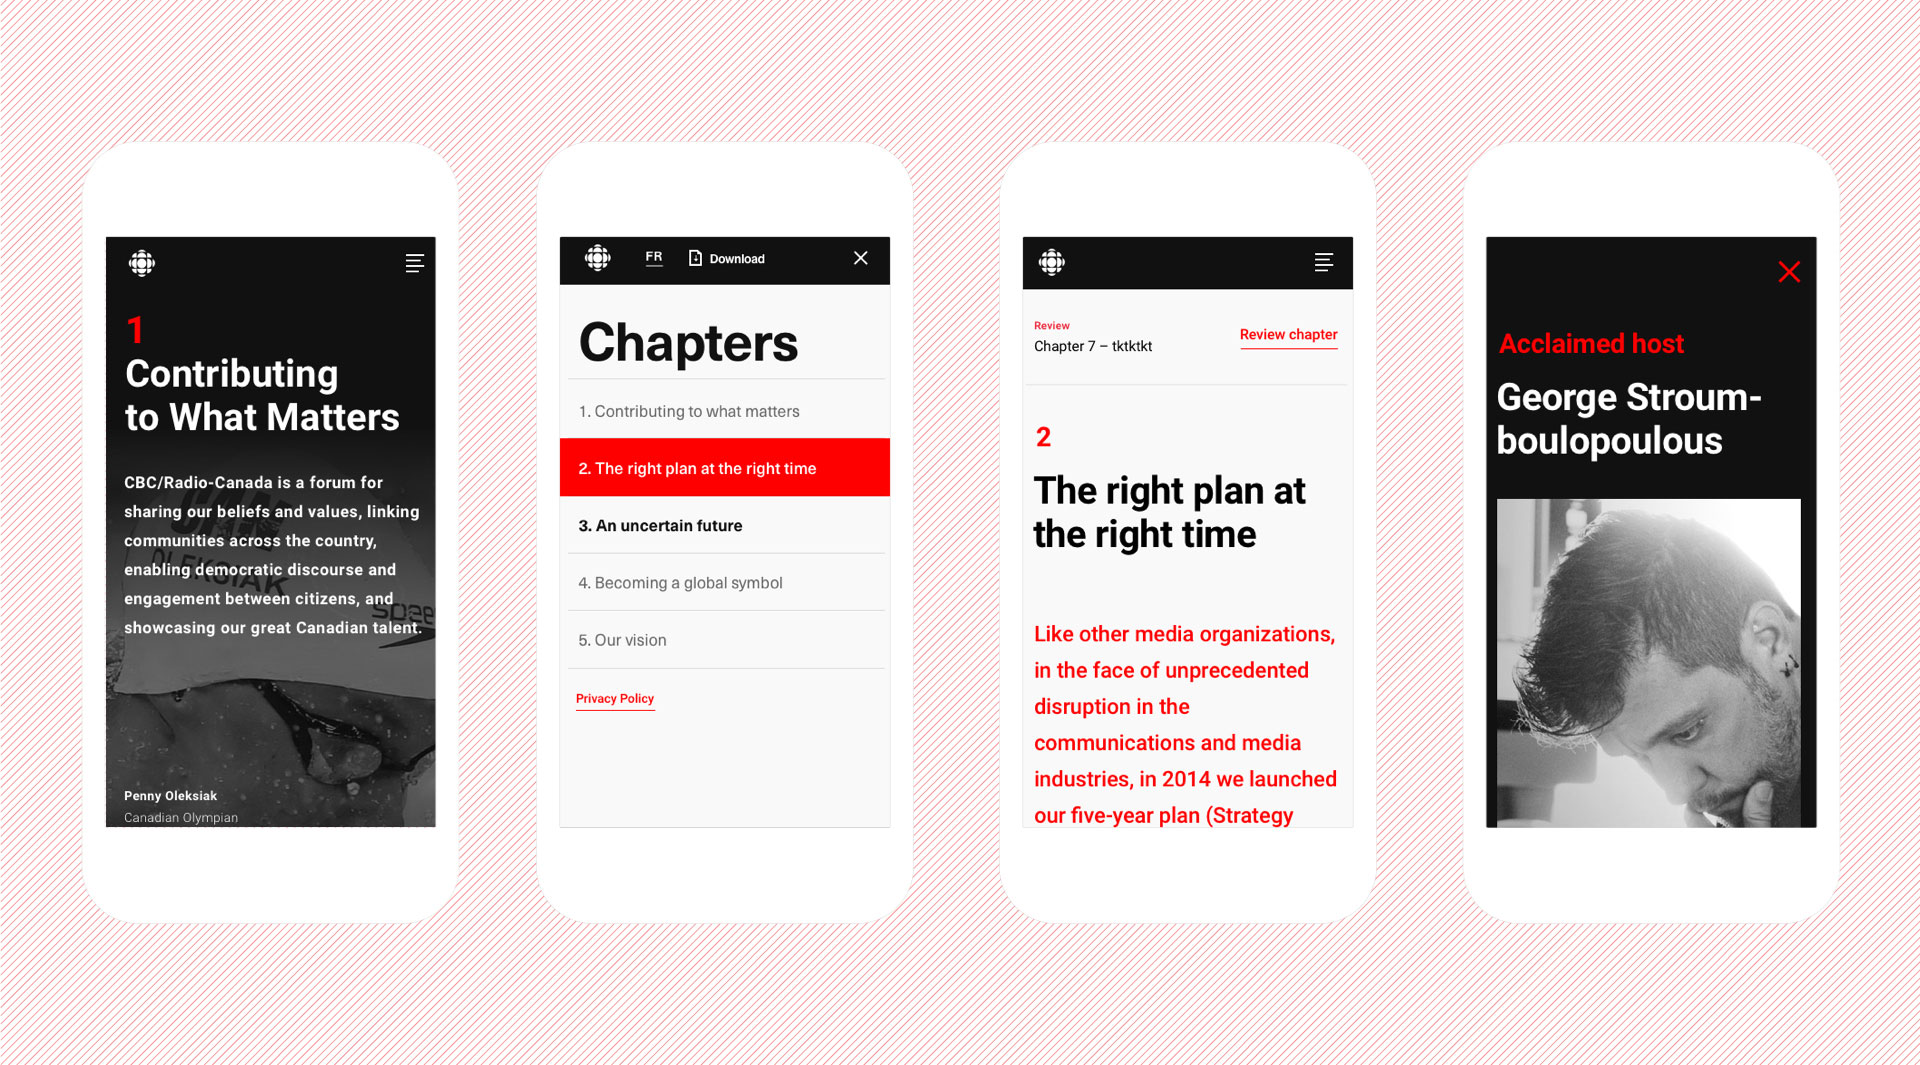 Complete mobile flow showing home page, navigation, chapter pages, and detail pages